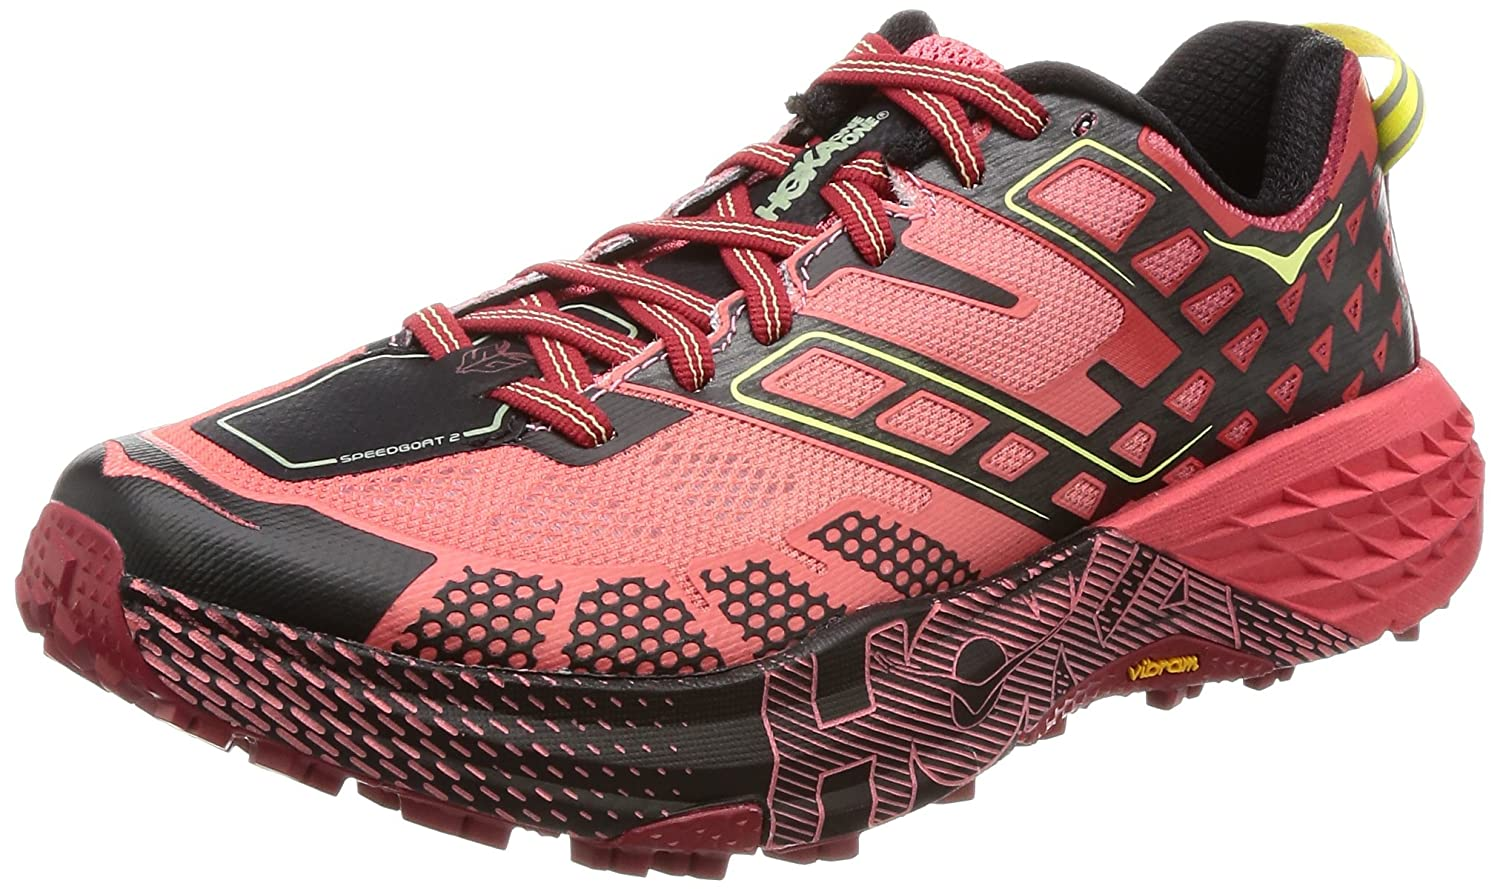 HOKA ONE ONE Women's Speedgoat 2 Trail Shoe B01N4G7RKX 6 B(M) US|Dubarry/Chili Pepper